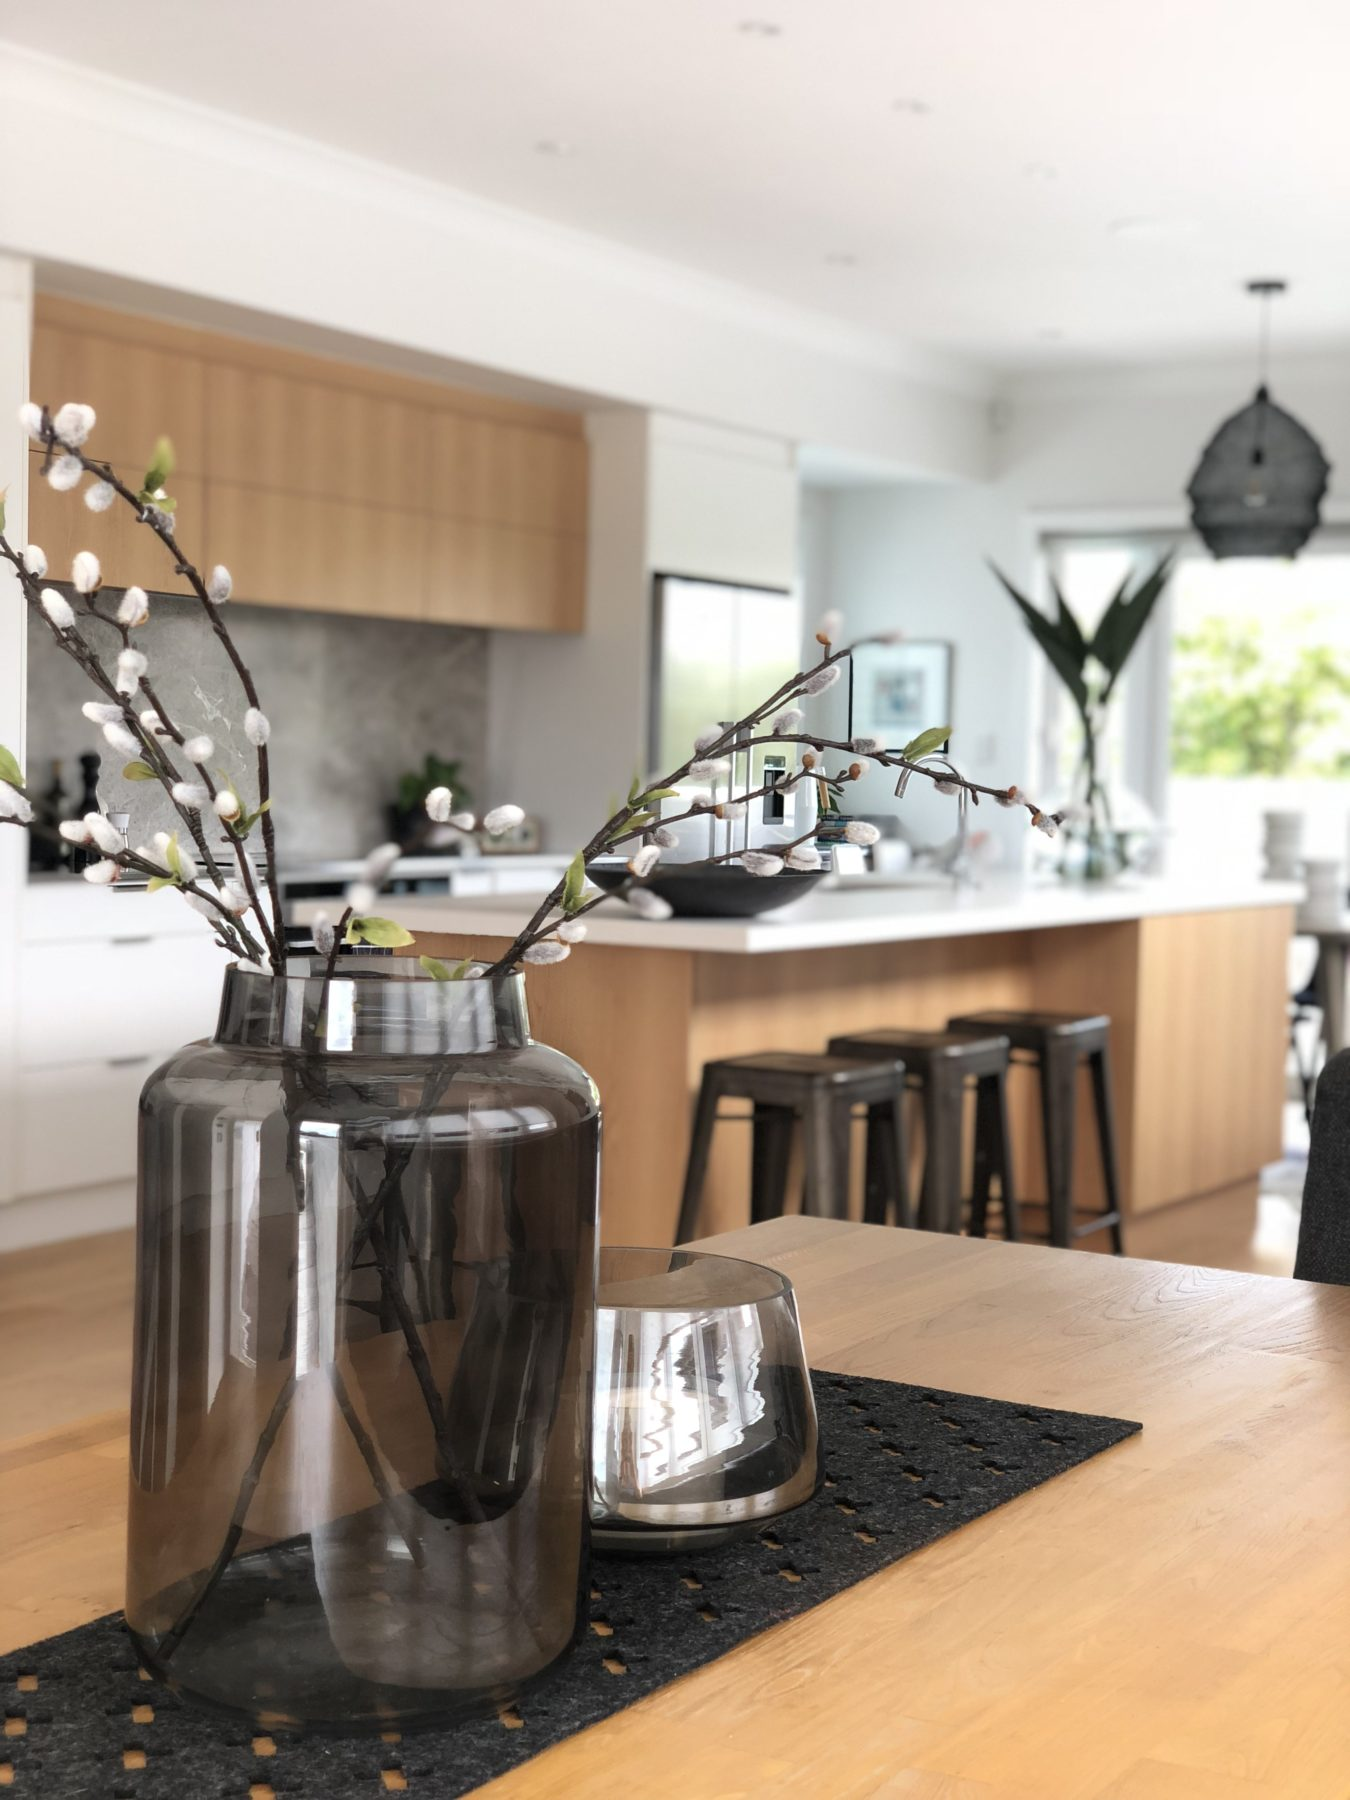 oak kitchen and dining room styling with dark glass vases and bunnytails